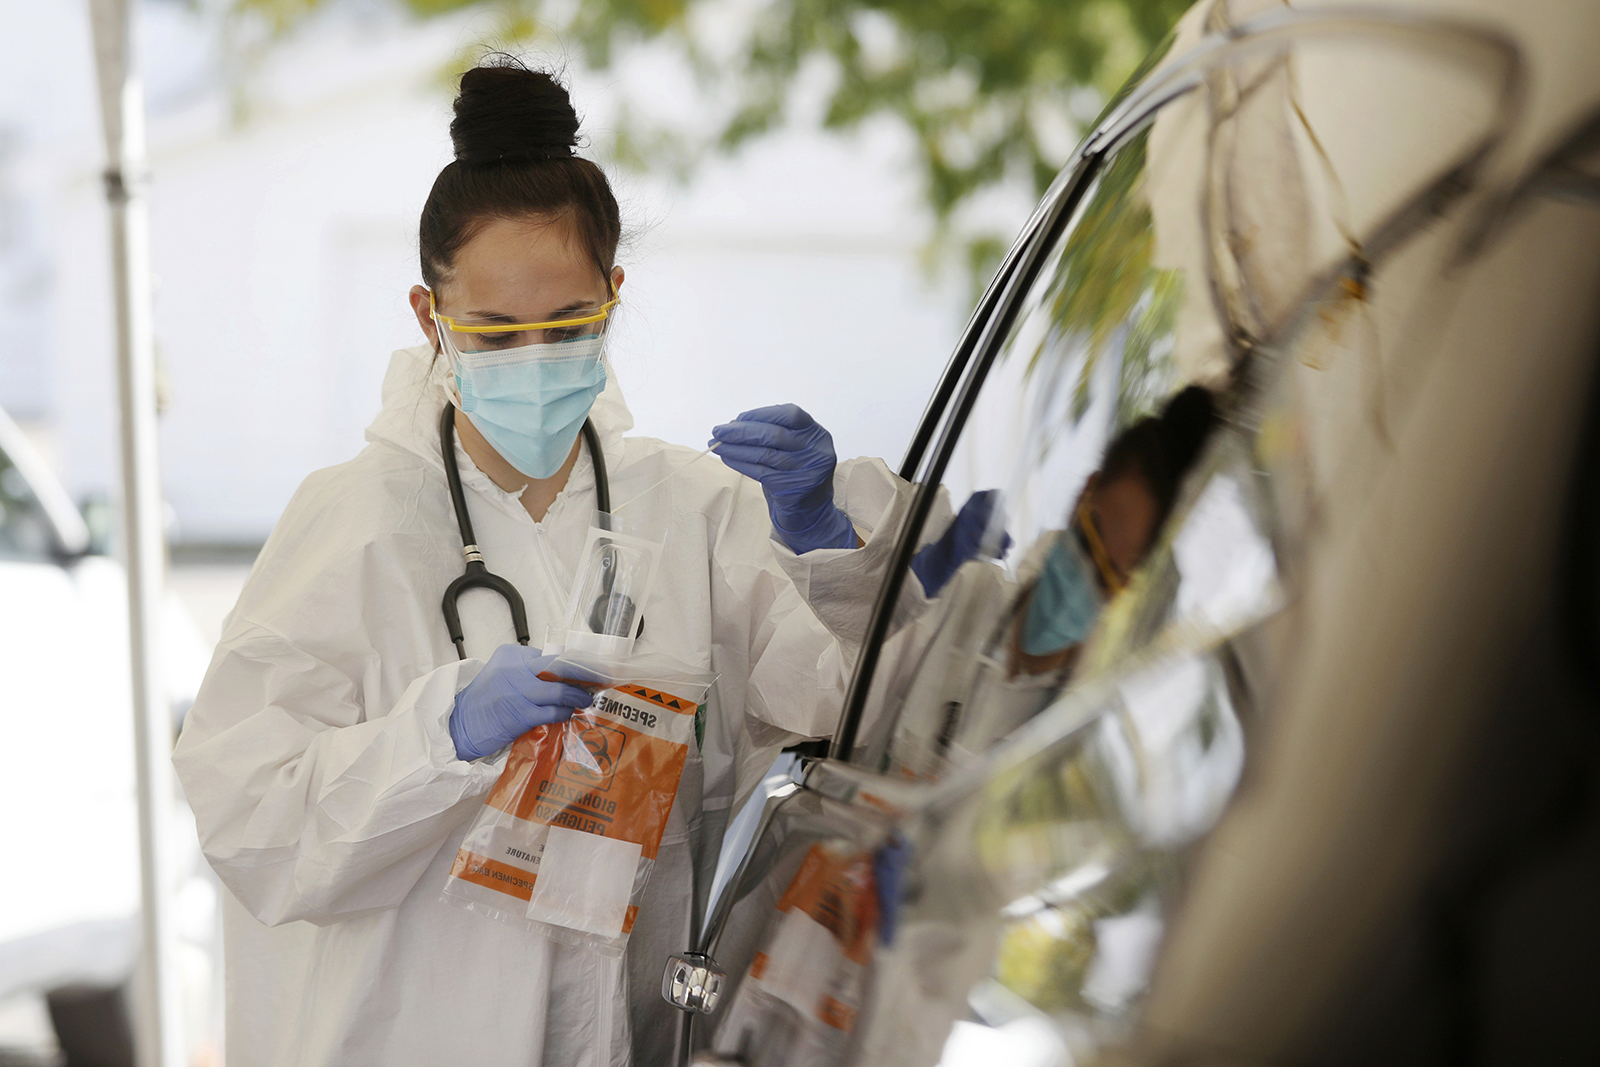 Medical Assistant Savannah Dela Vega places a nasal swab in a container for coronavirus testing at the drive-thru clinic in Casper, Wyoming, on Friday, October 9, 2020.